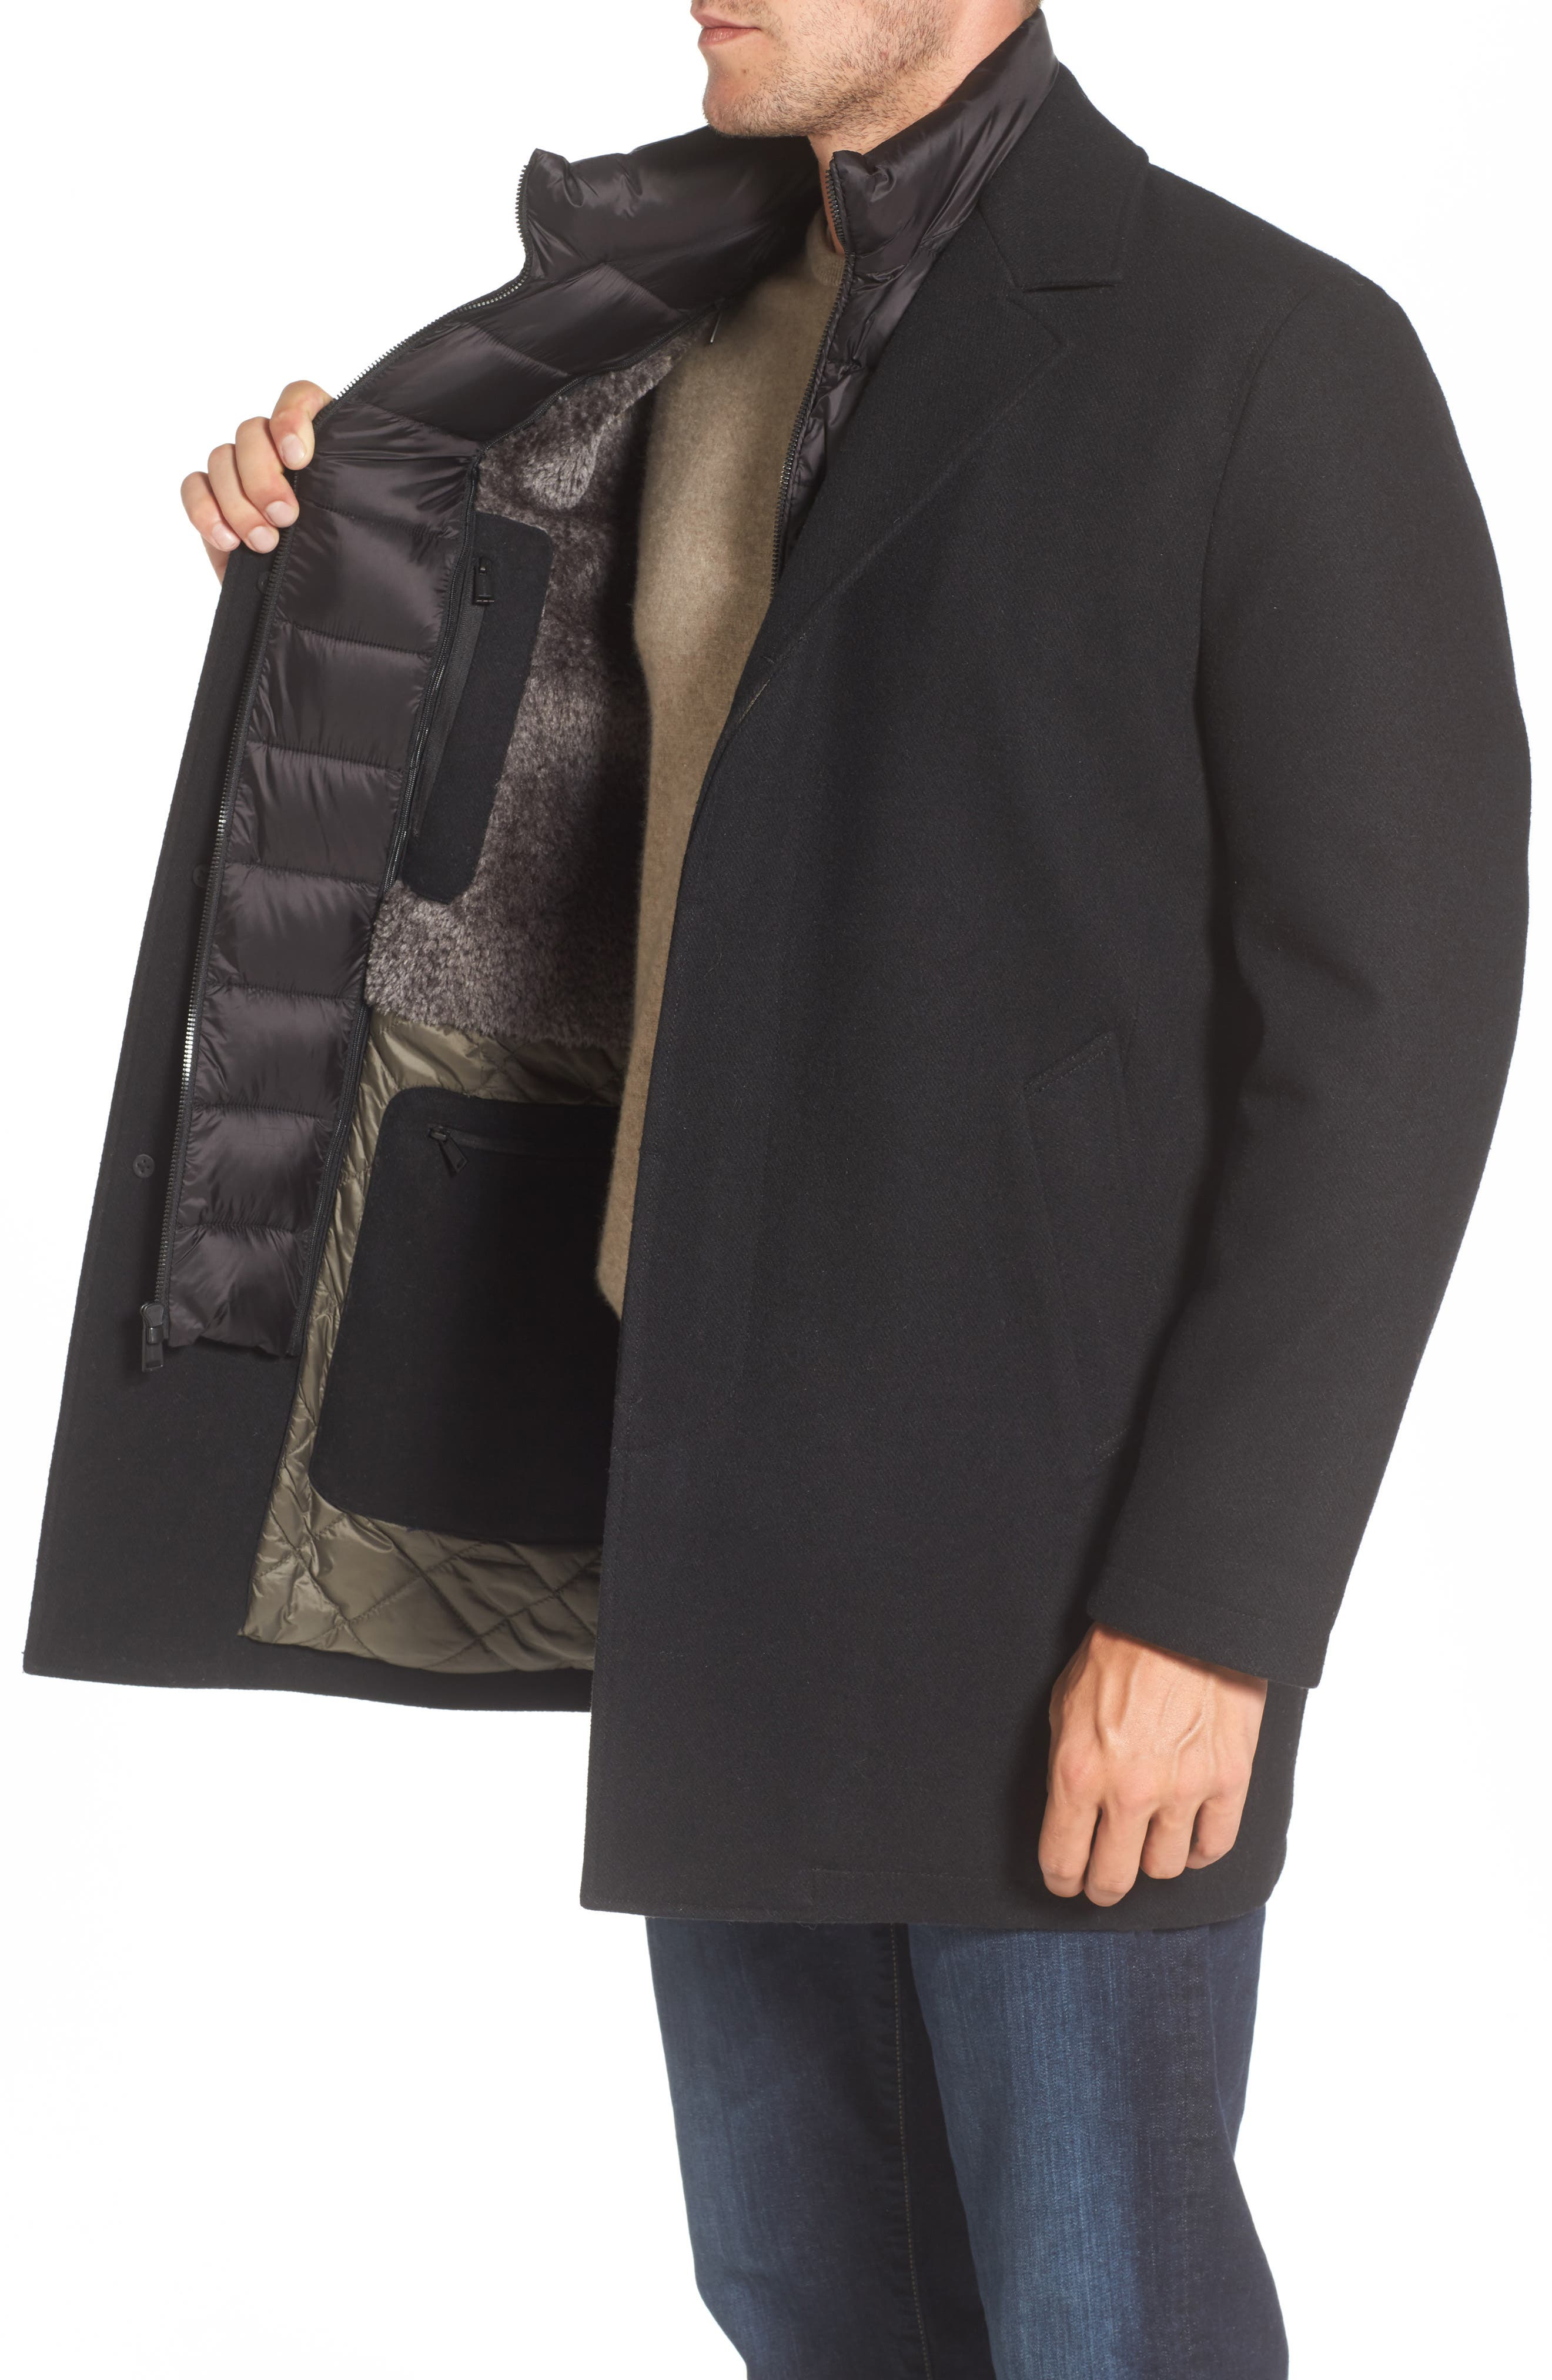 Alternate Image 3  - Cole Haan Water Repellent Jacket with Inset Bib & Faux Fur Lining